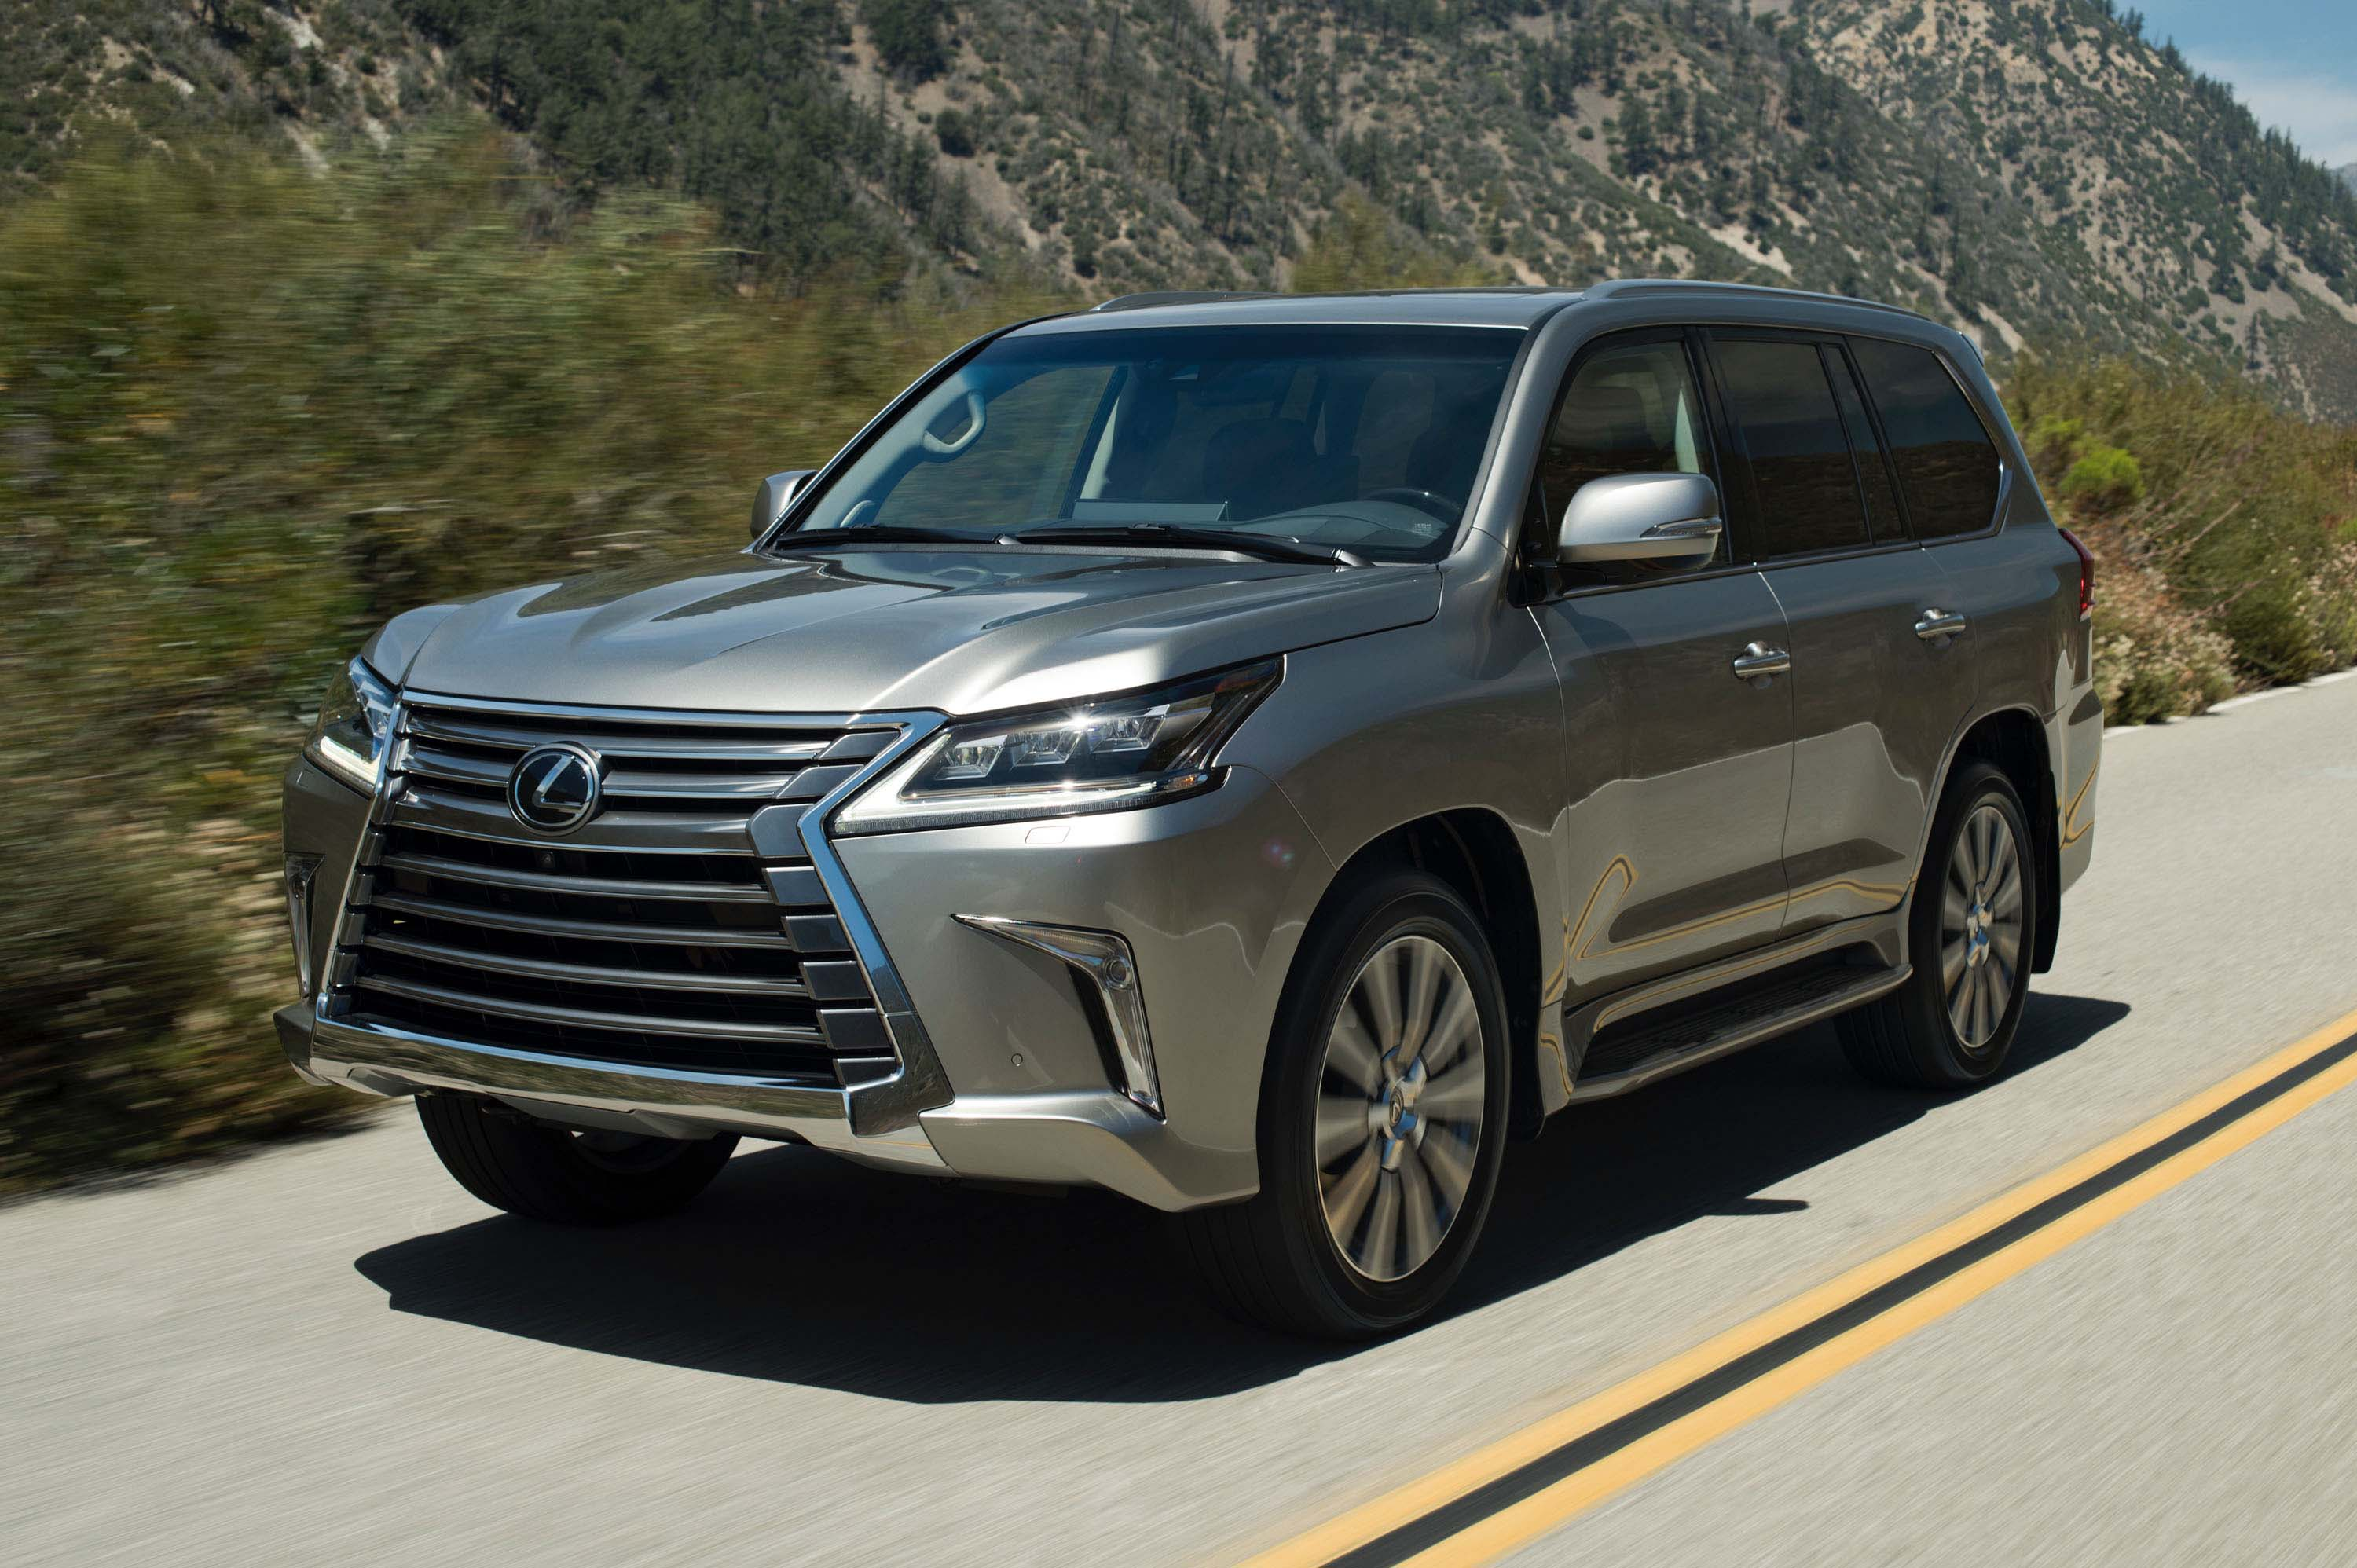 Toyota Lexus Price In Pakistan